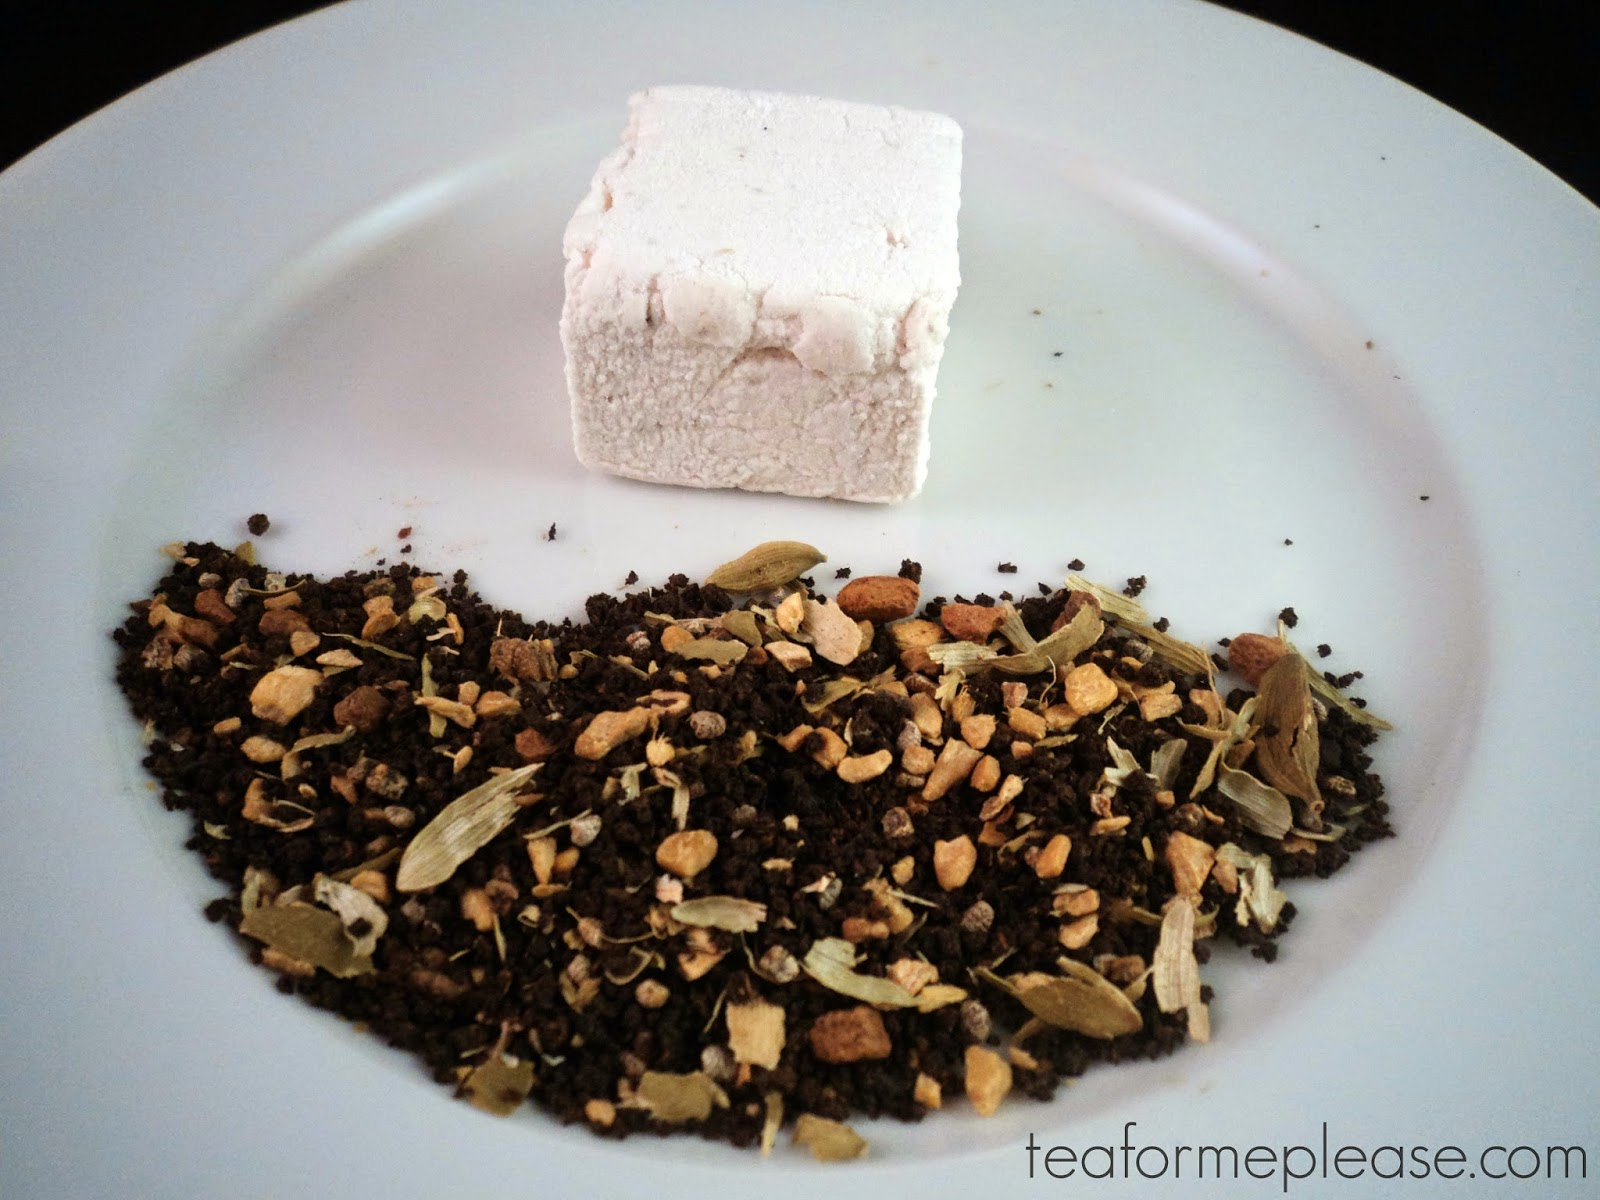 Cinnamon Marshmallow with Chai Tea